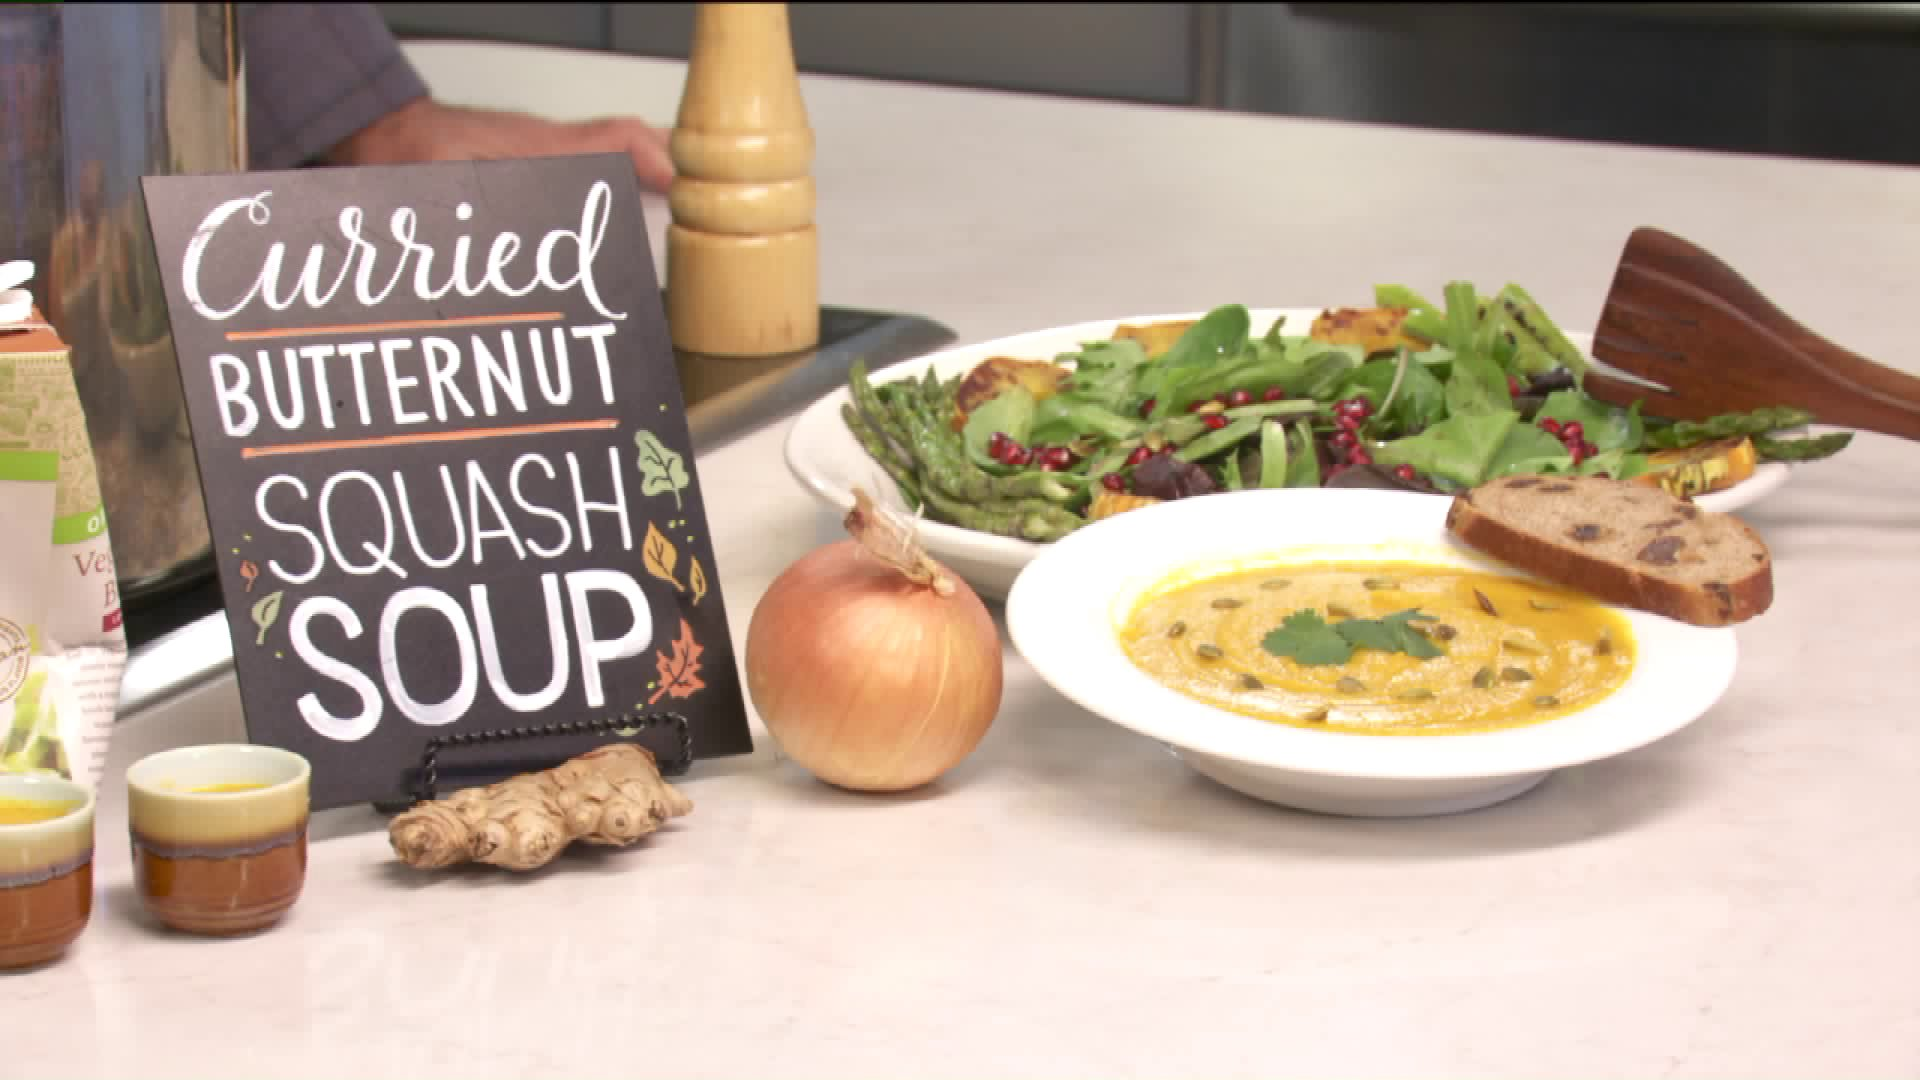 How To Make Curried Butternut Squash Soup